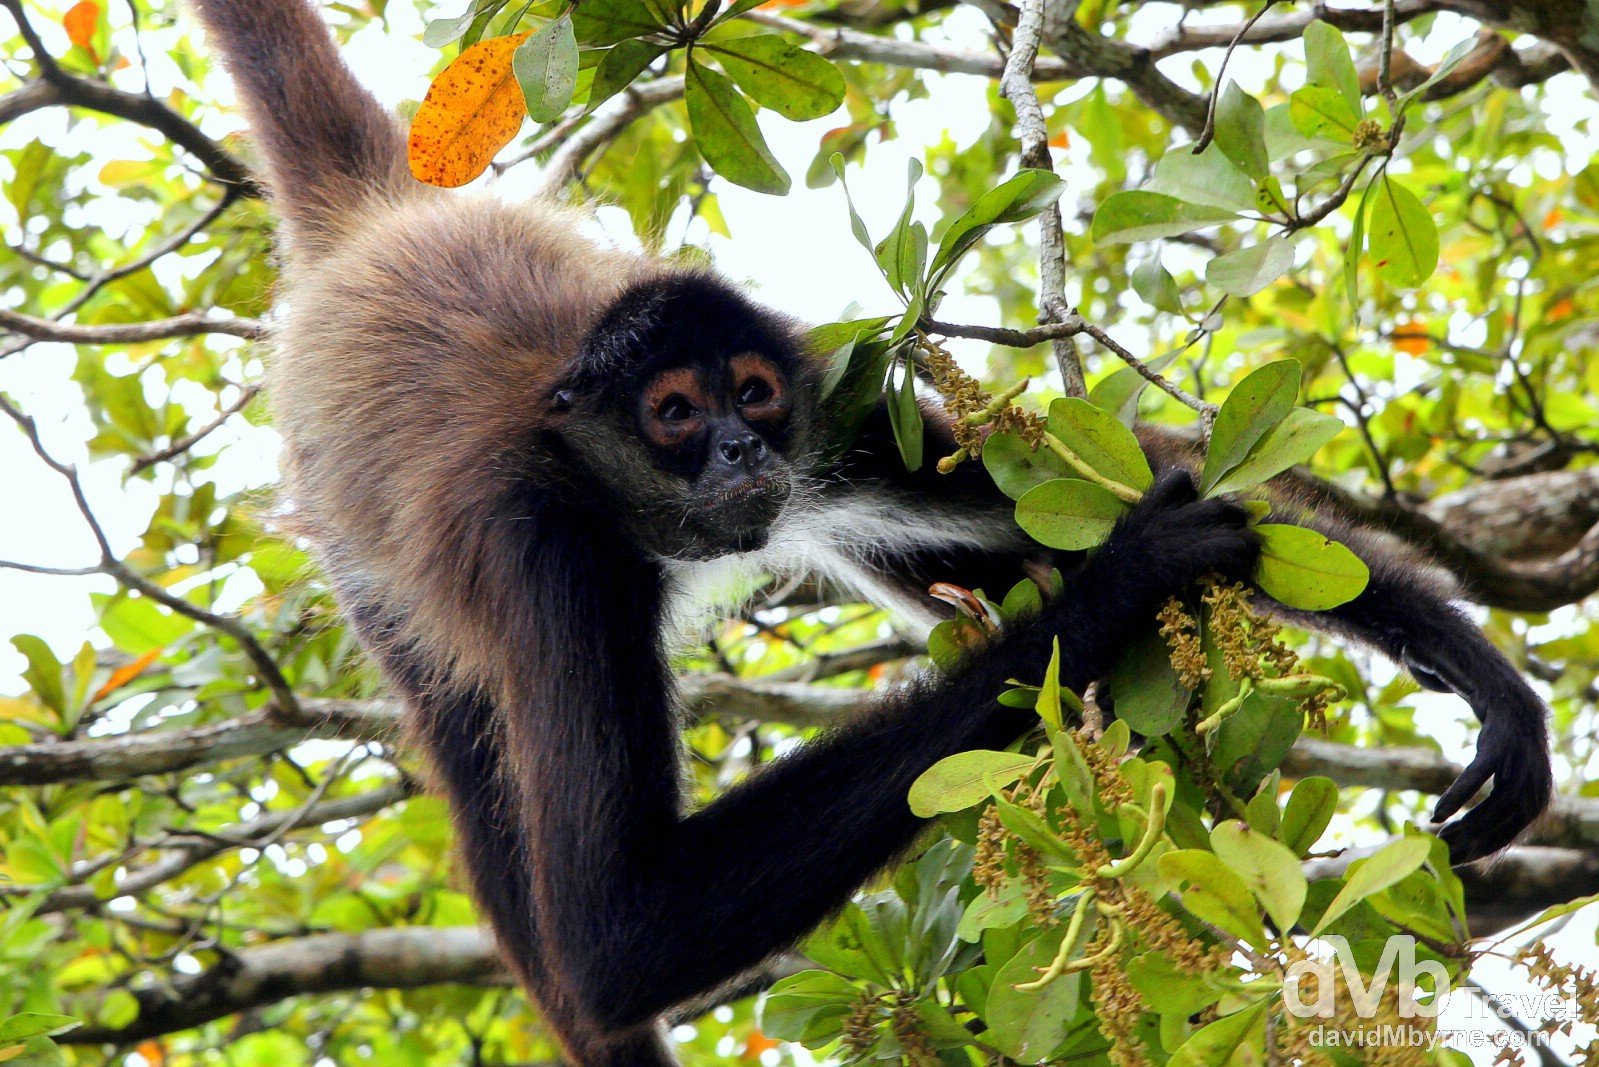 A monkey hangs from overhanging vegetation on the New River, Central Belize. May 11th 2013.